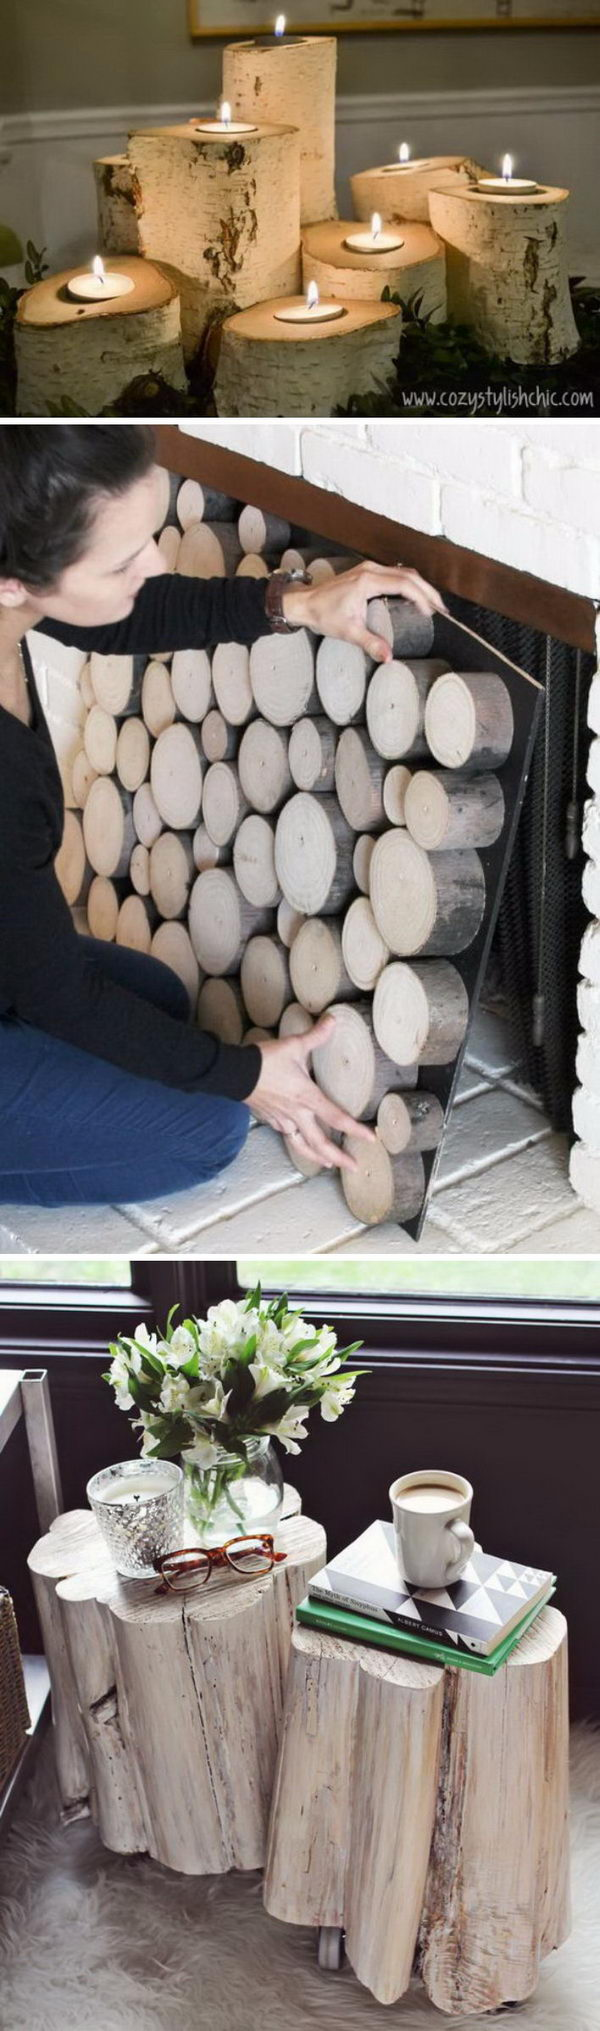 Cool Tree Stump and Log DIY Projects.